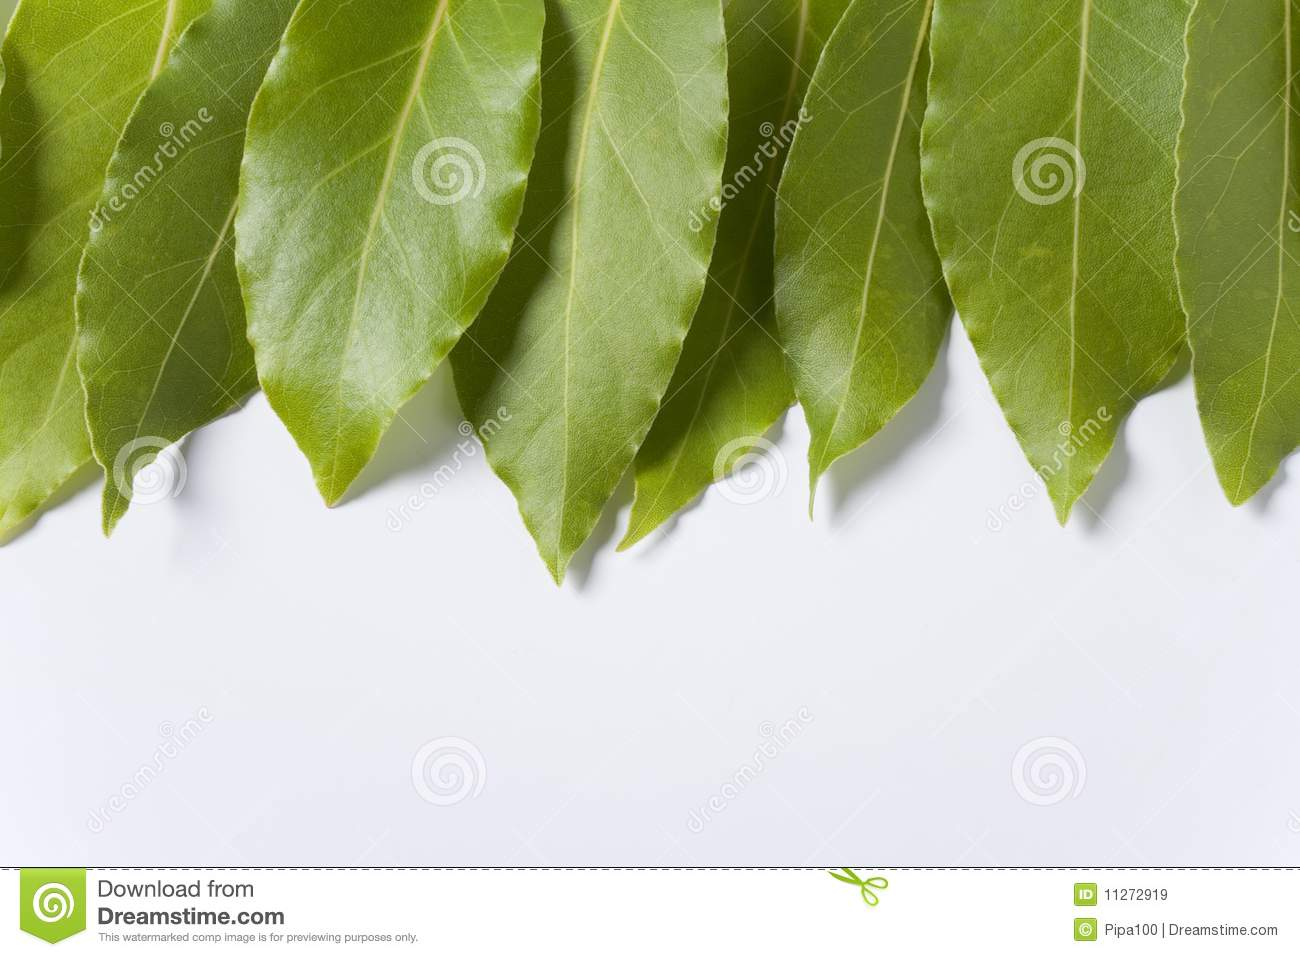 how to cook with bay leaves